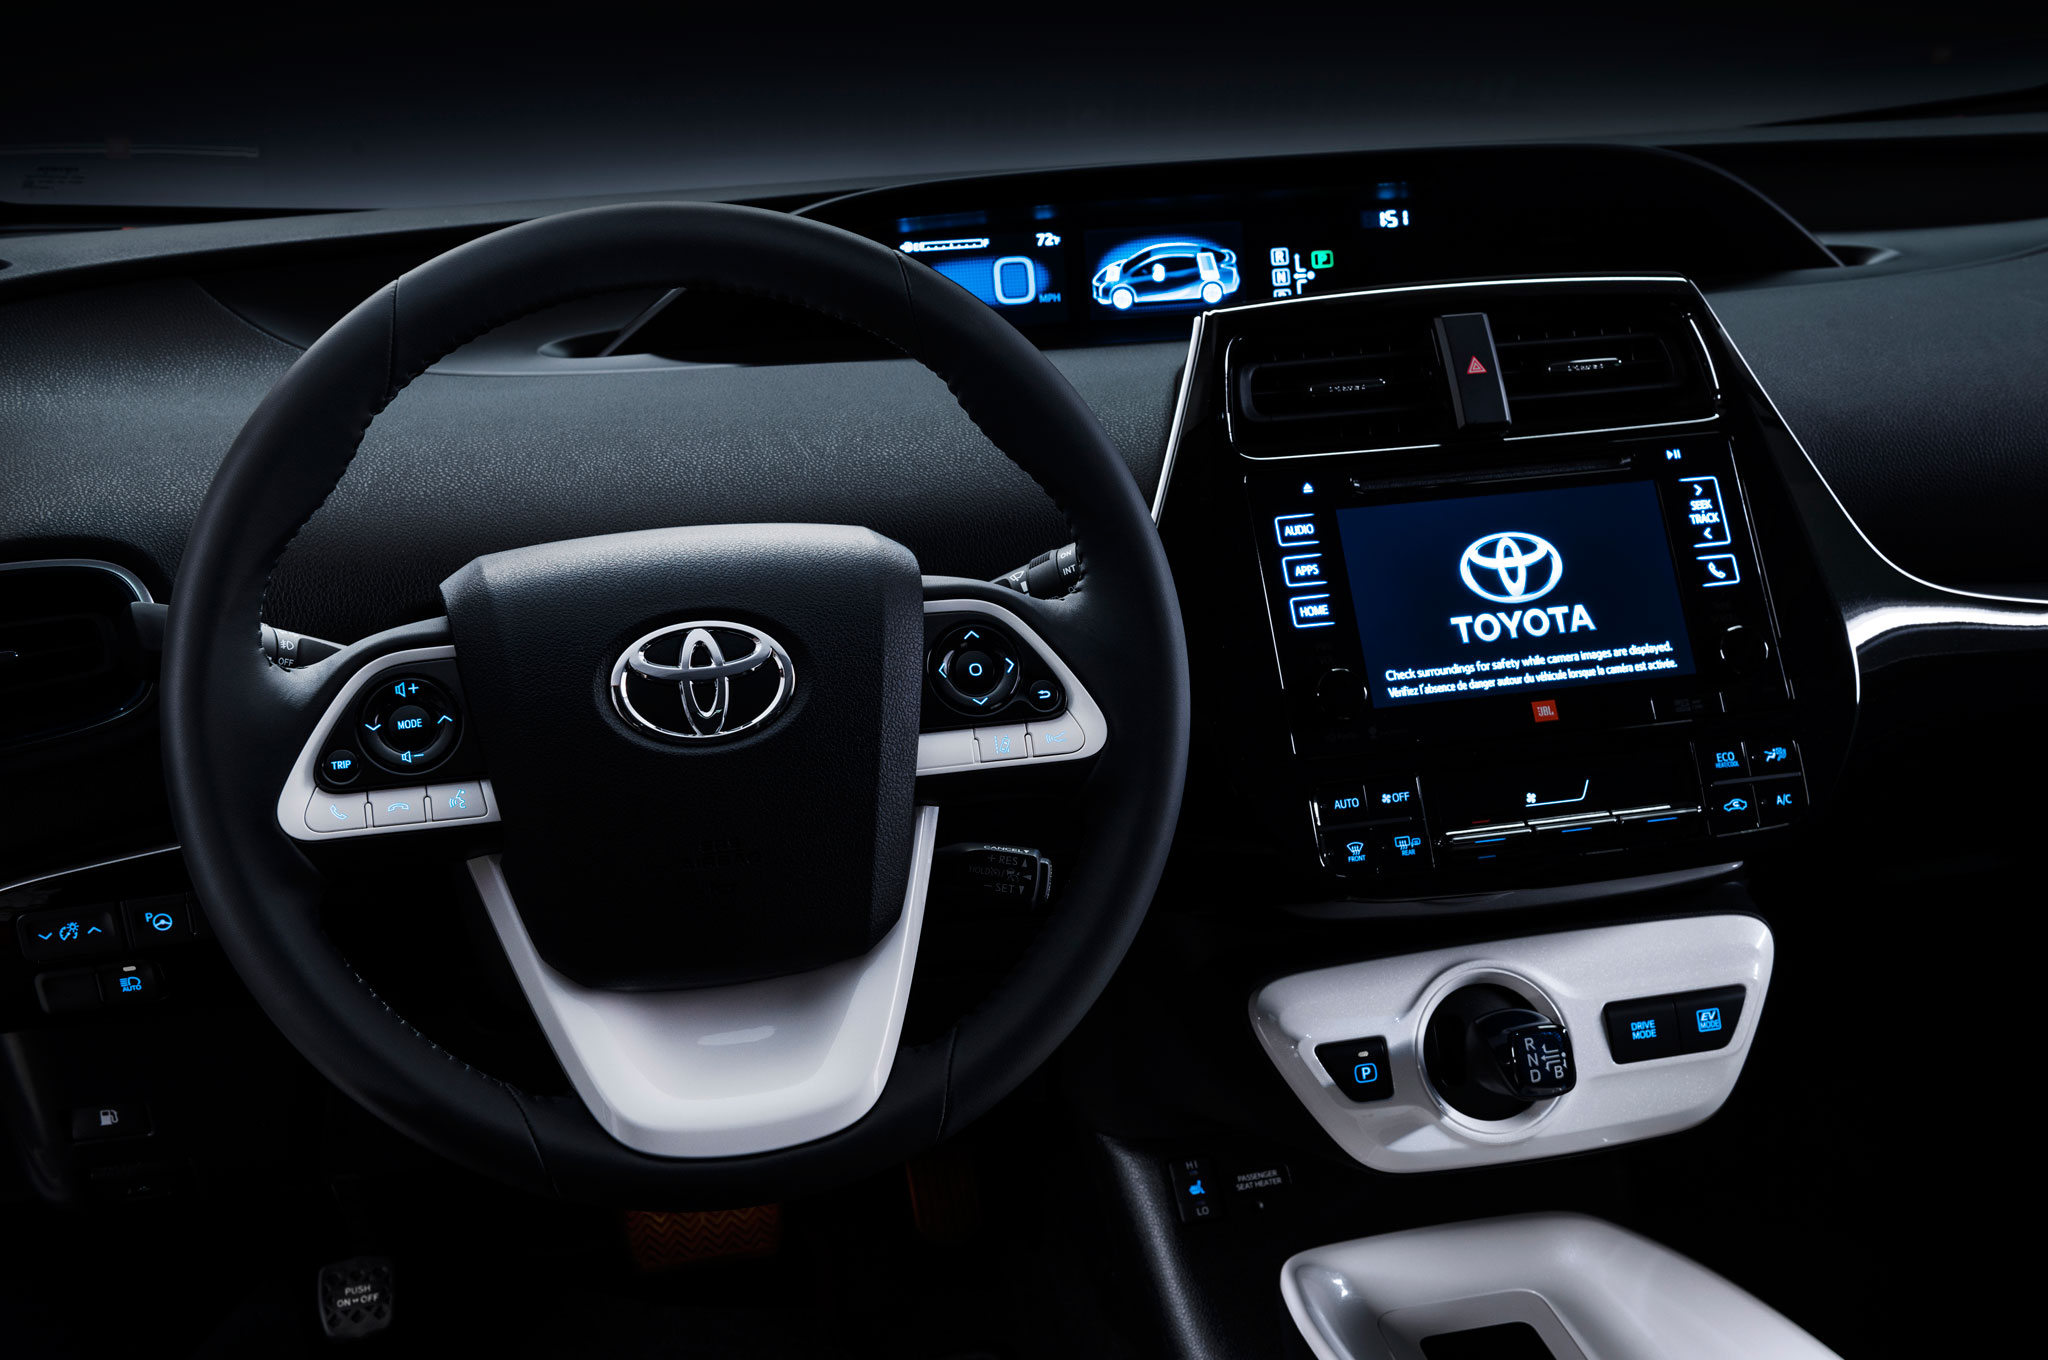 2016-toyota-prius-interior-from-driver-seat